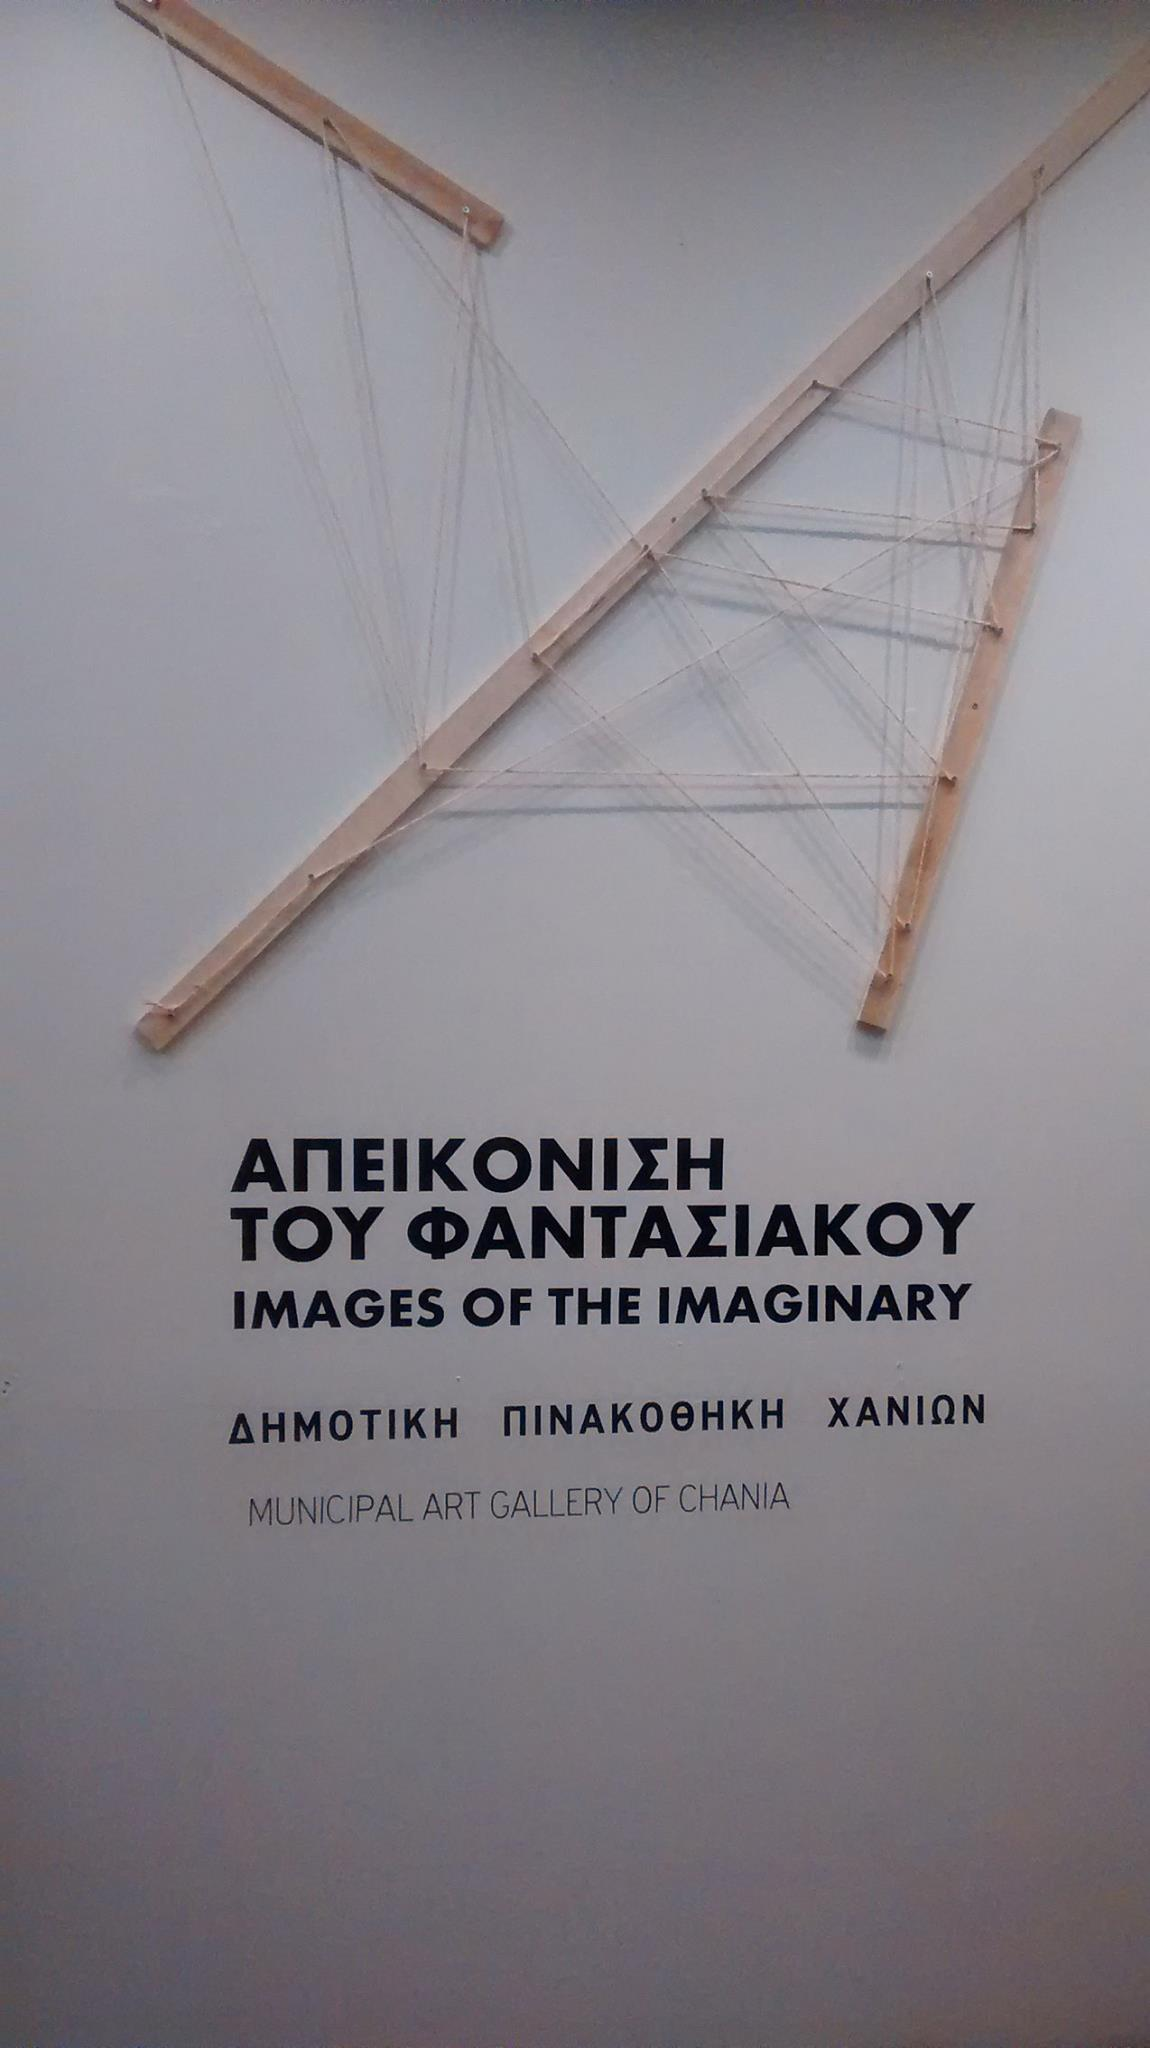 Images of the imaginary exhibition